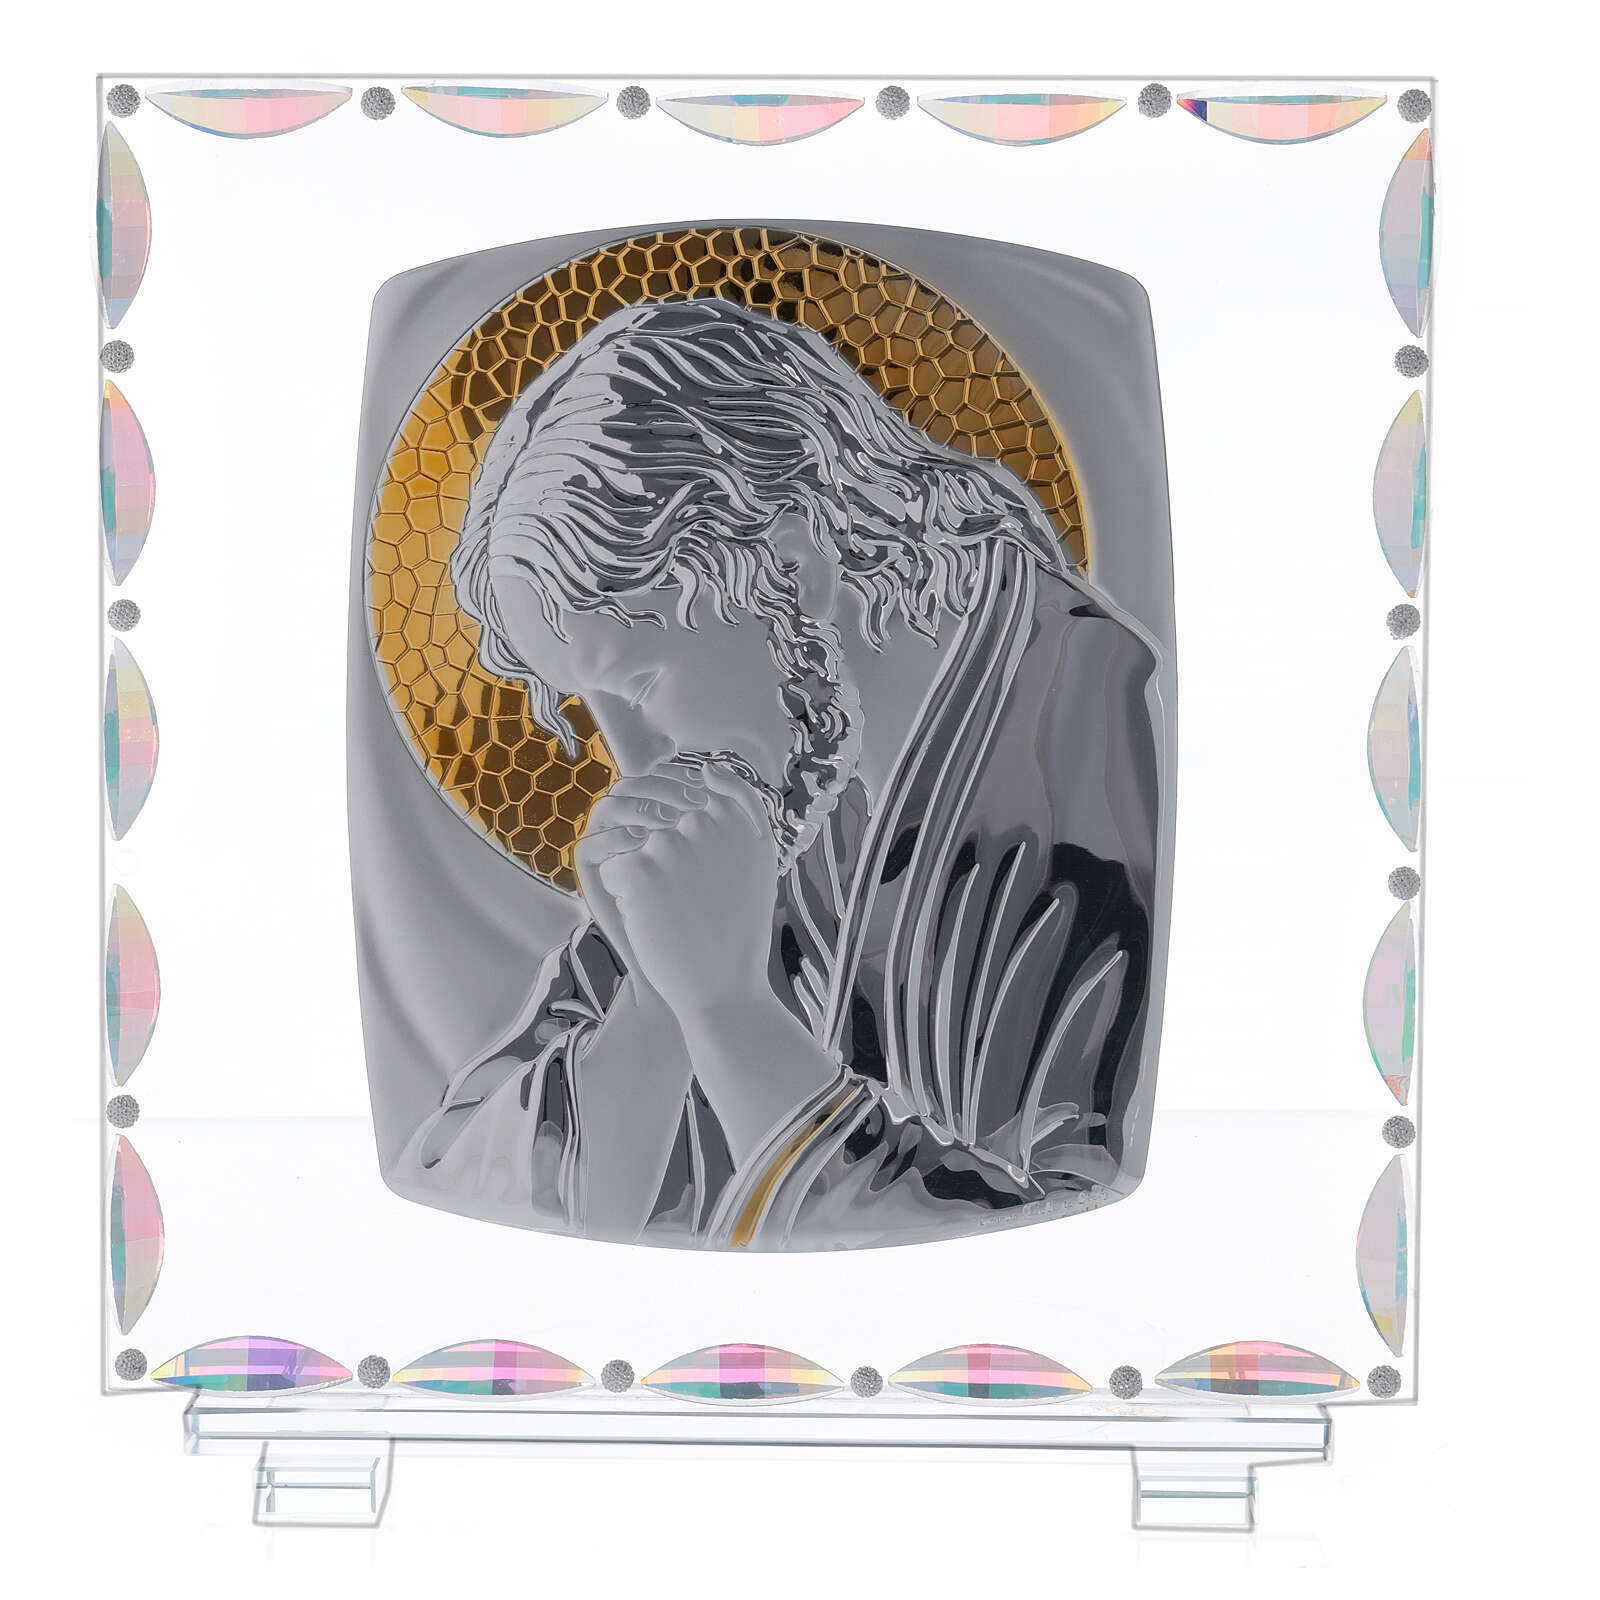 Glass picture of Christ with a golden halo 3